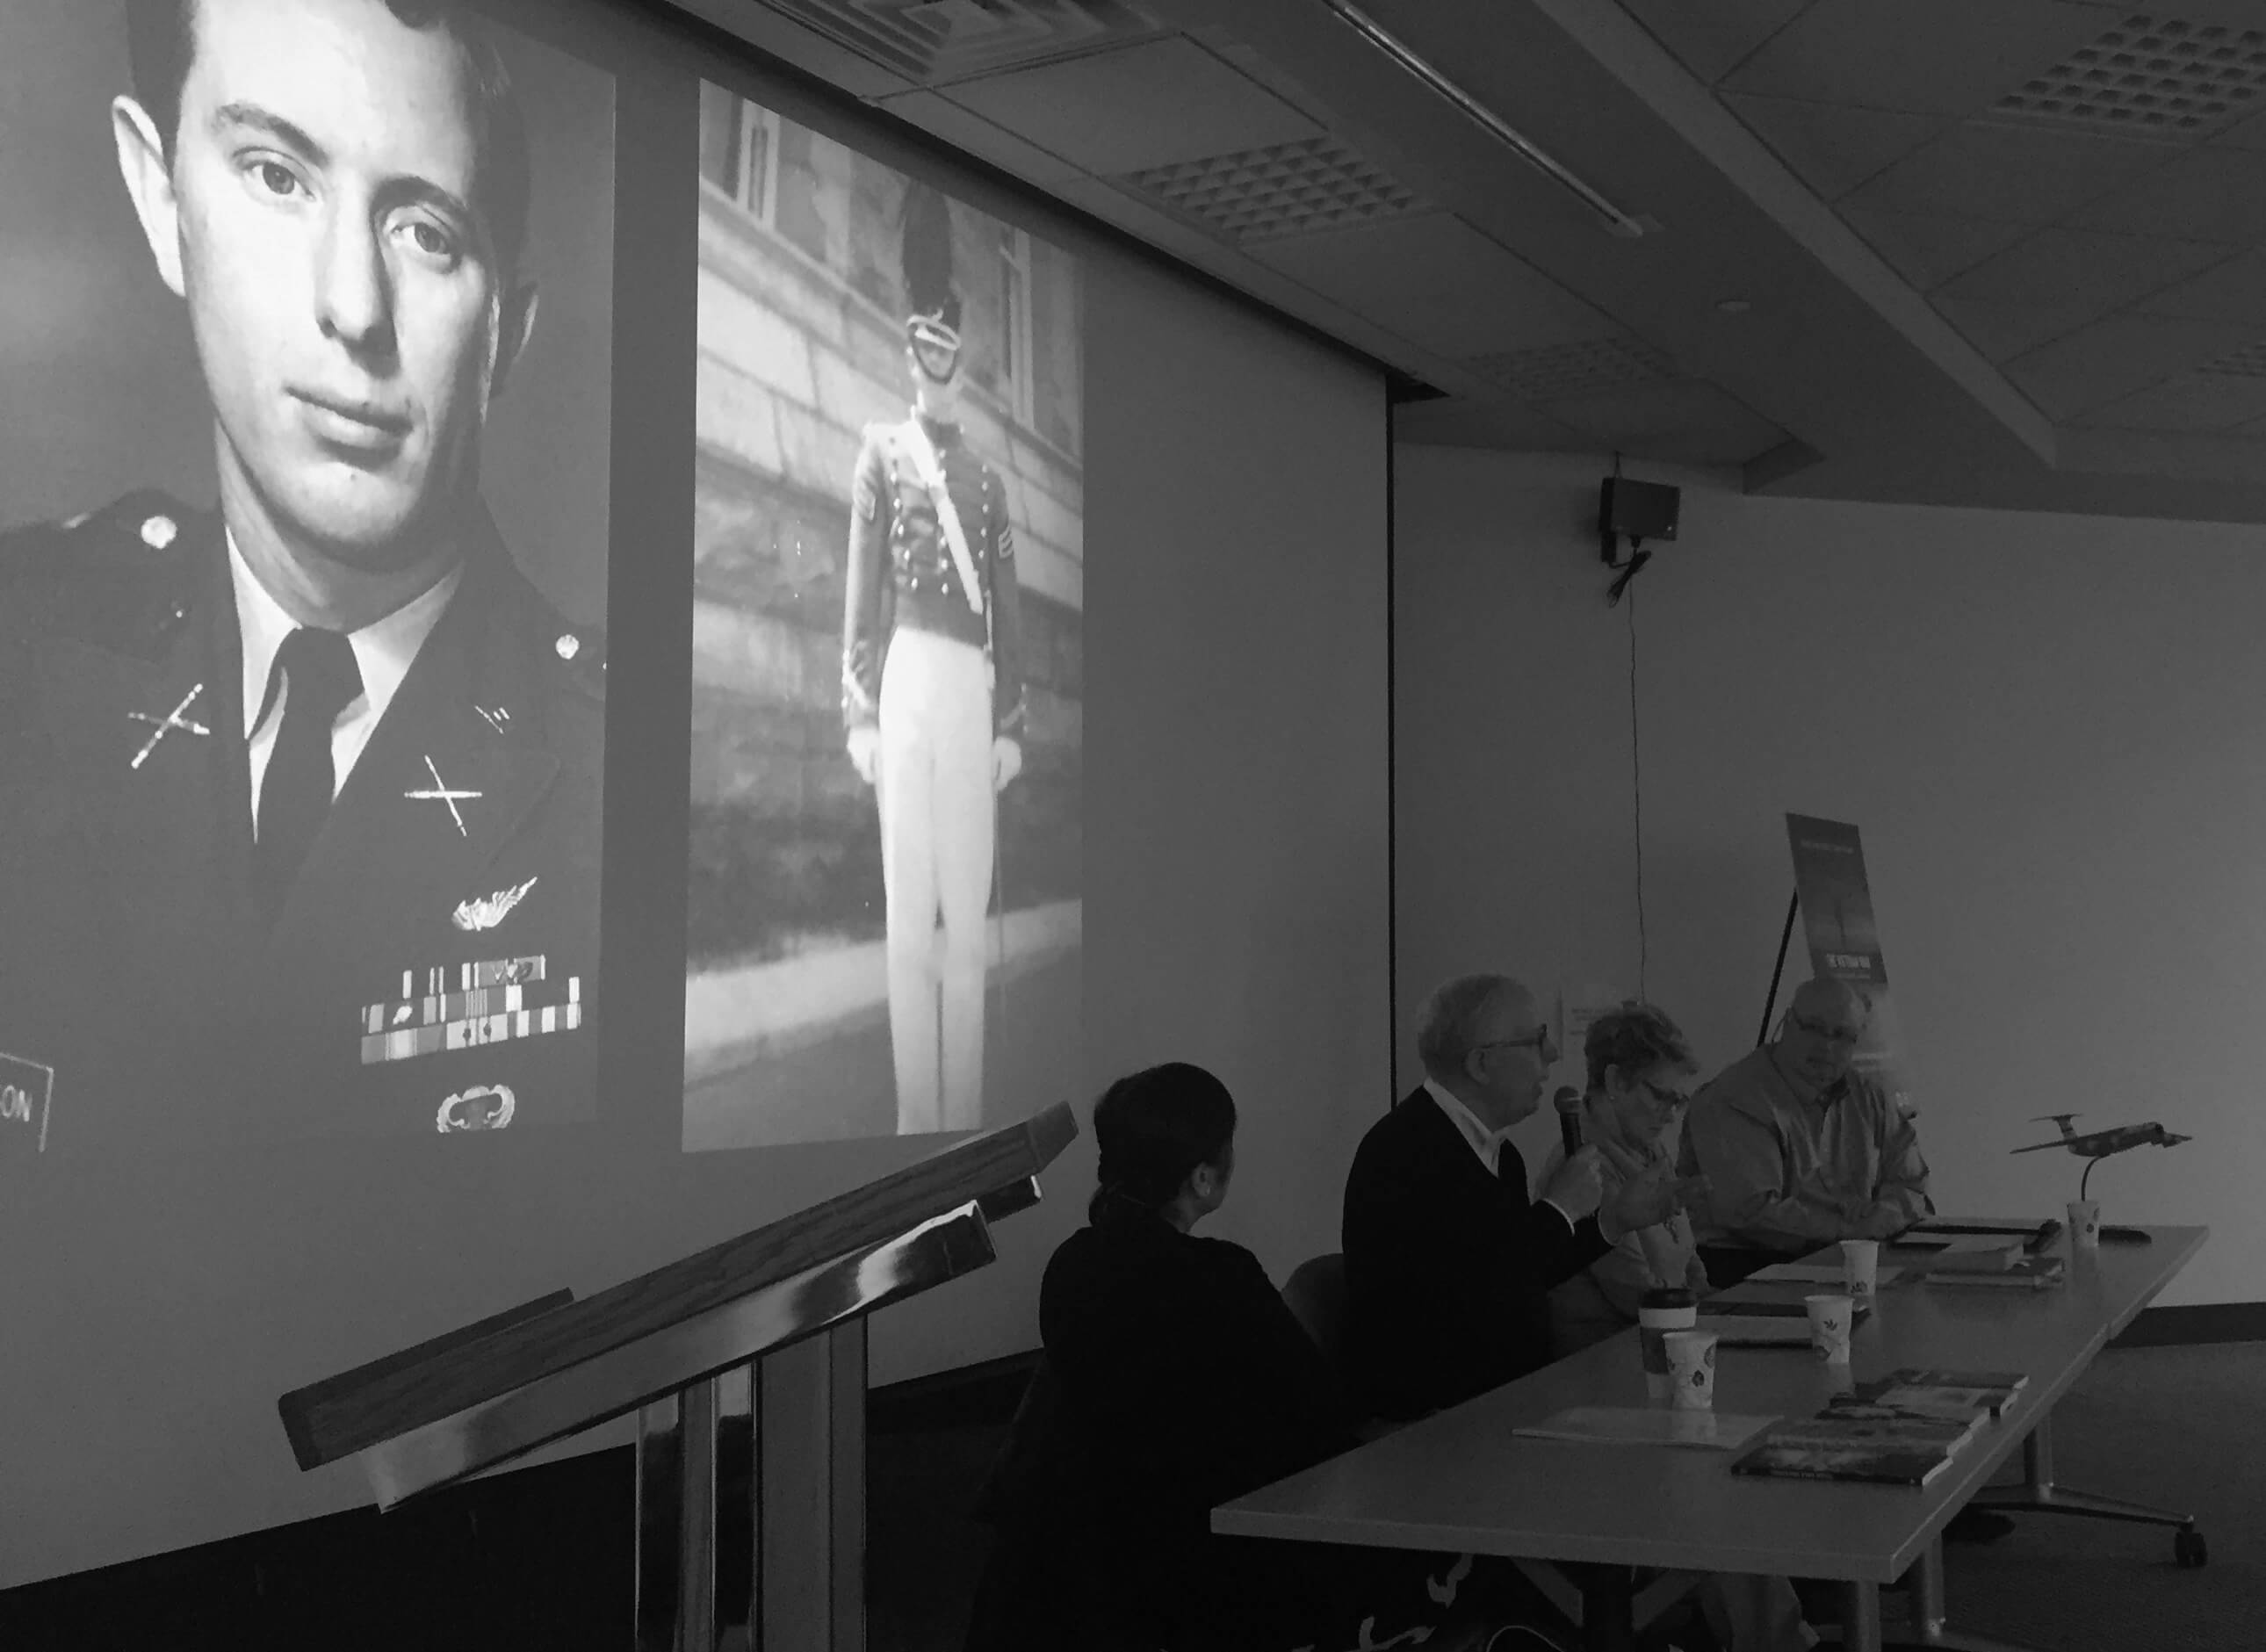 Black and white photo of four people at a table and photos projected behind them of a soldier.